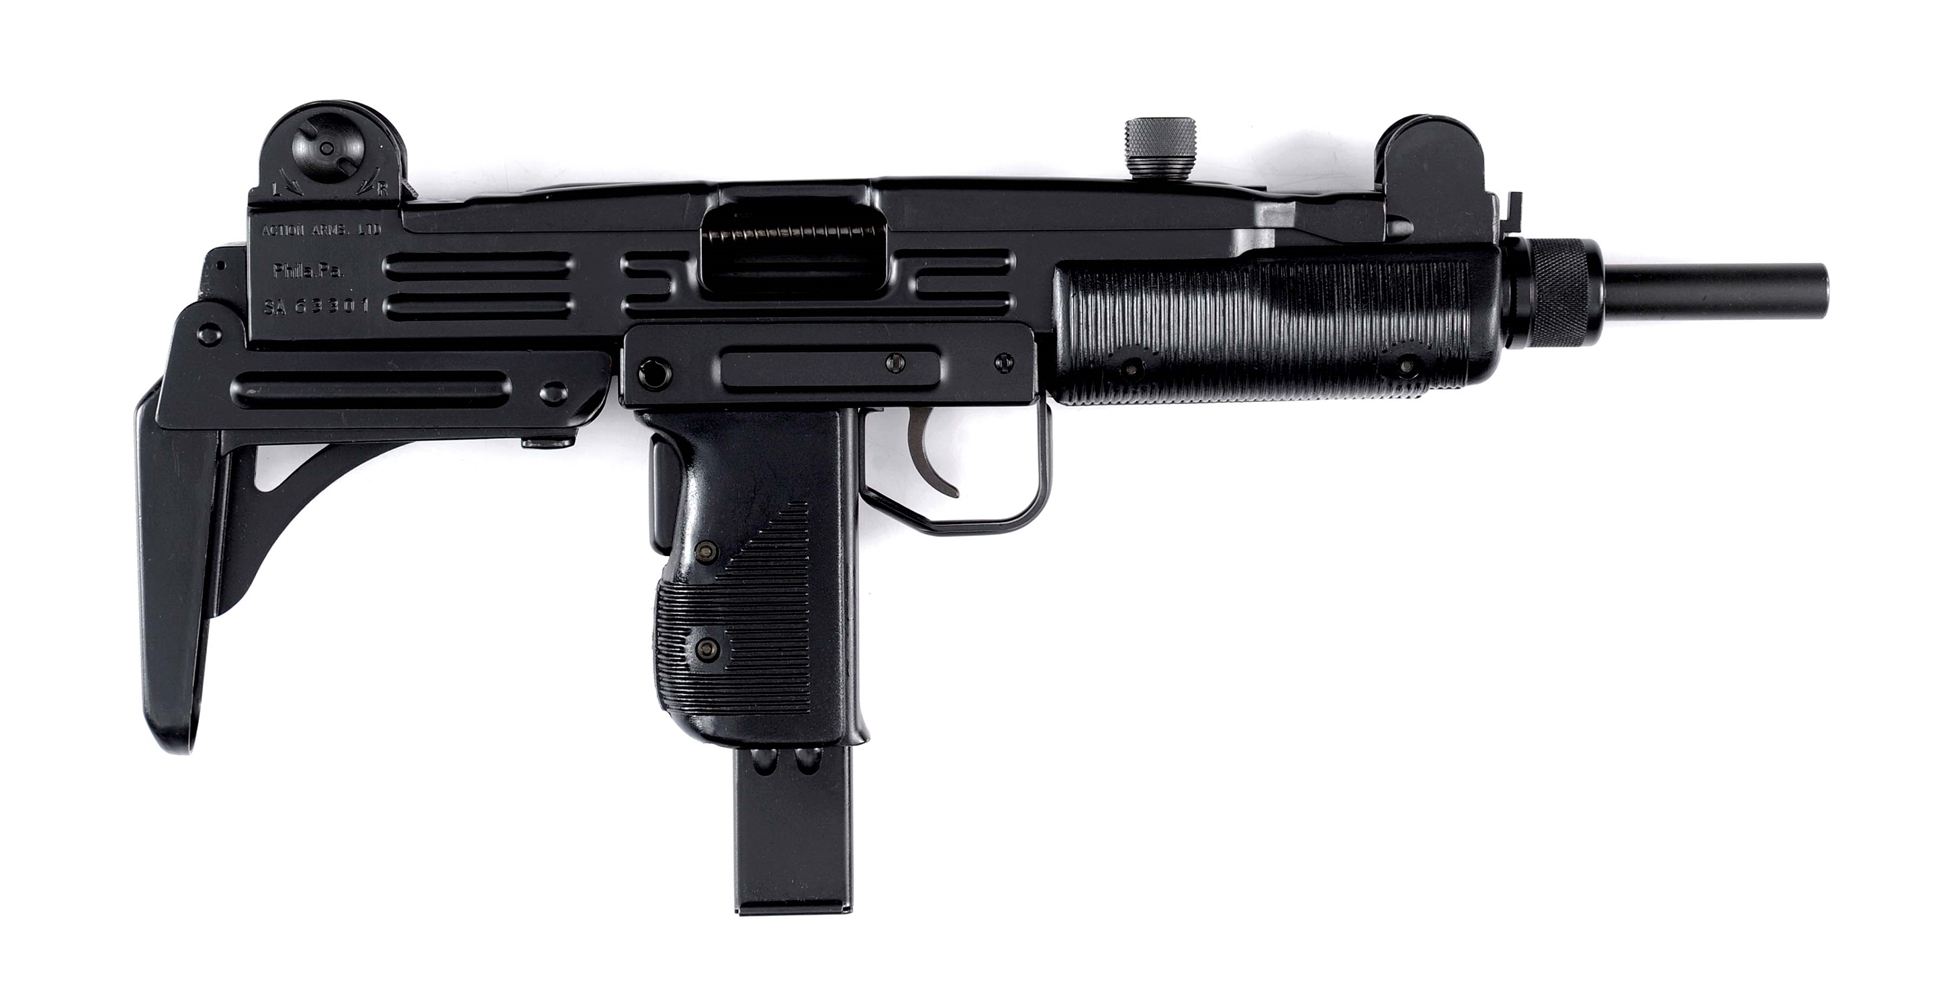 (N) Fleming Registered Auto Sear in Minty Action Arms Uzi Machine Gun (Fully Transferable).